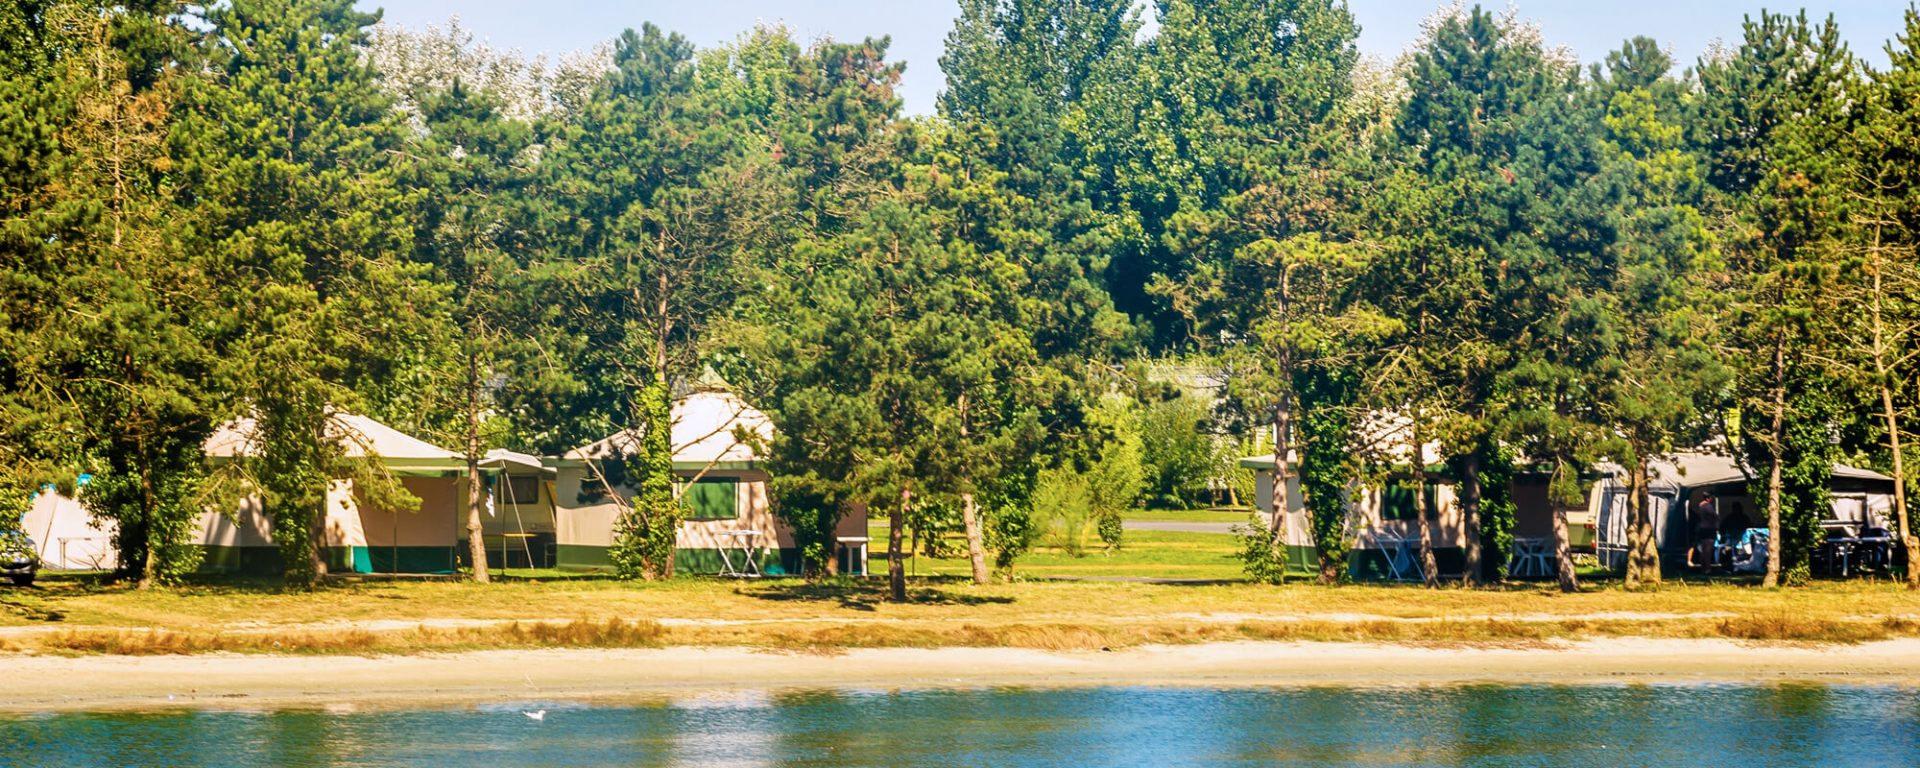 Camping Le Fanal : Page Emplacement